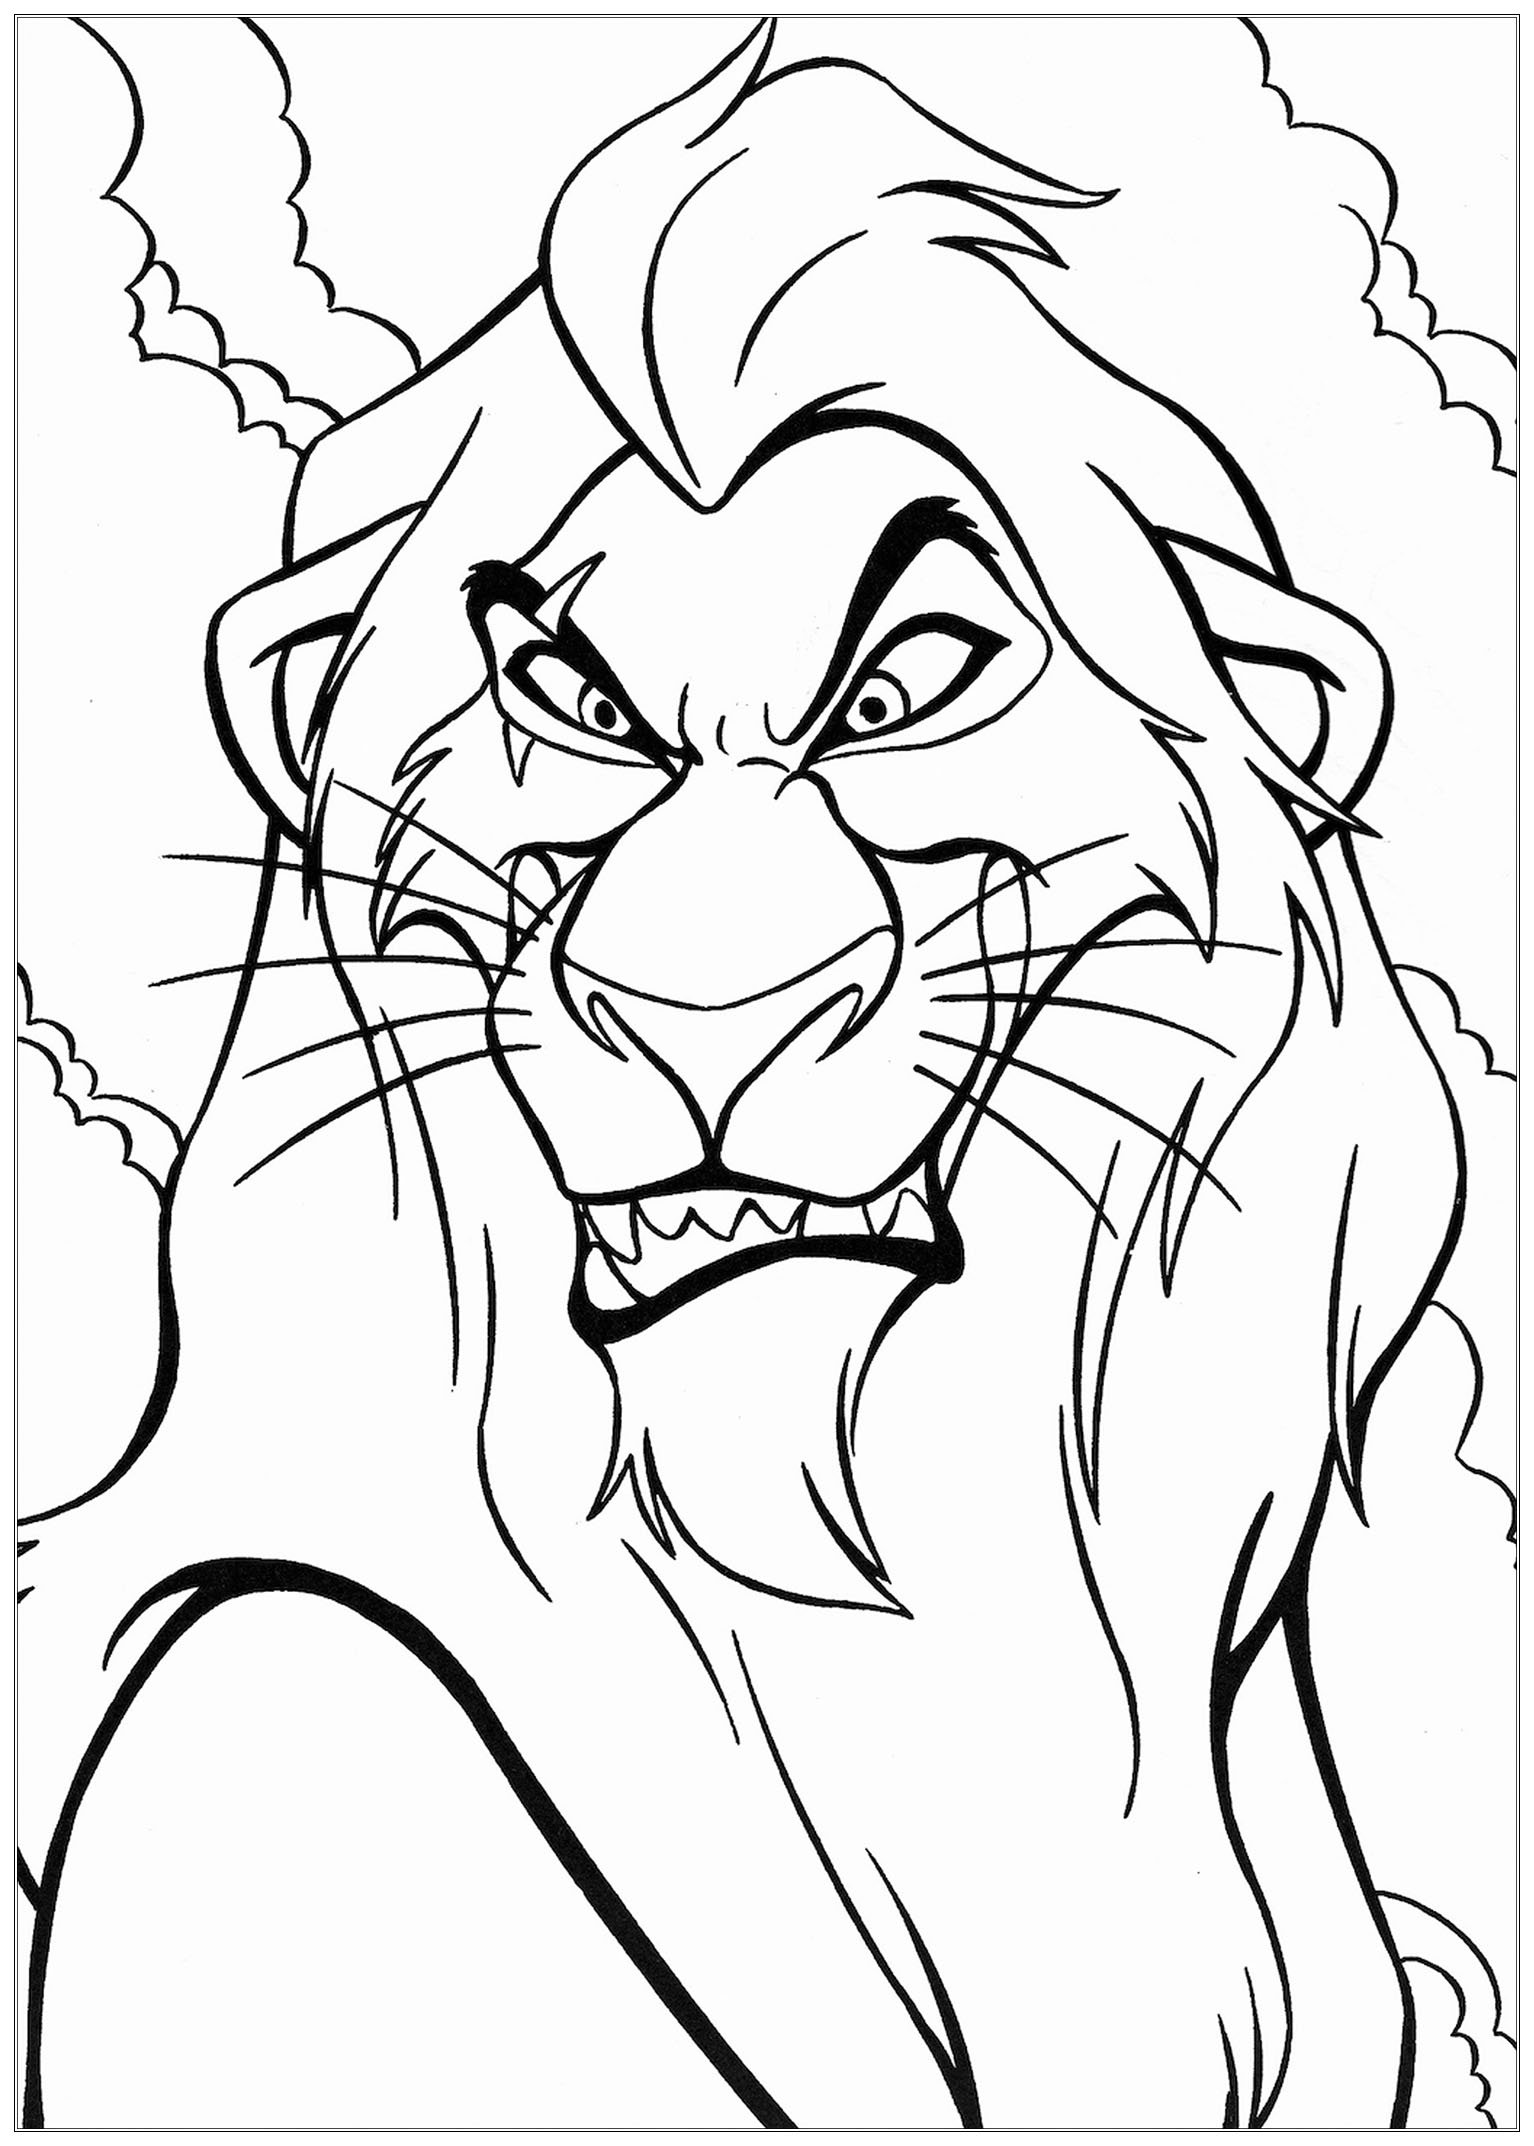 coloring pictures of lion king lion king simba coloring pages getcoloringpagescom pictures lion king of coloring